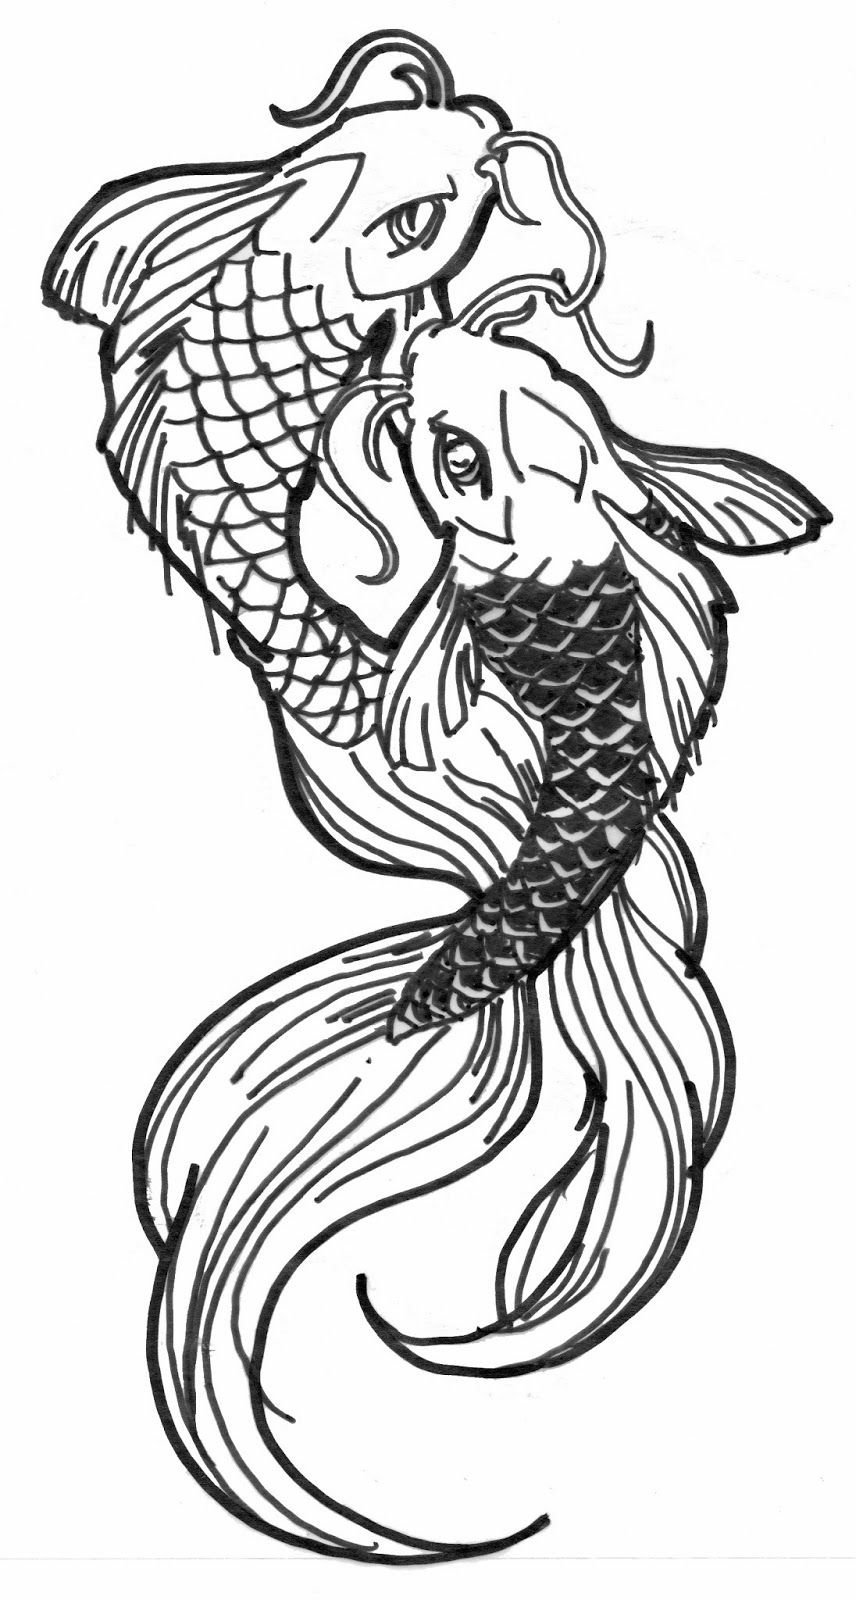 Koi fish drawings koi fish drawing outline from the thin for Koi fish outline